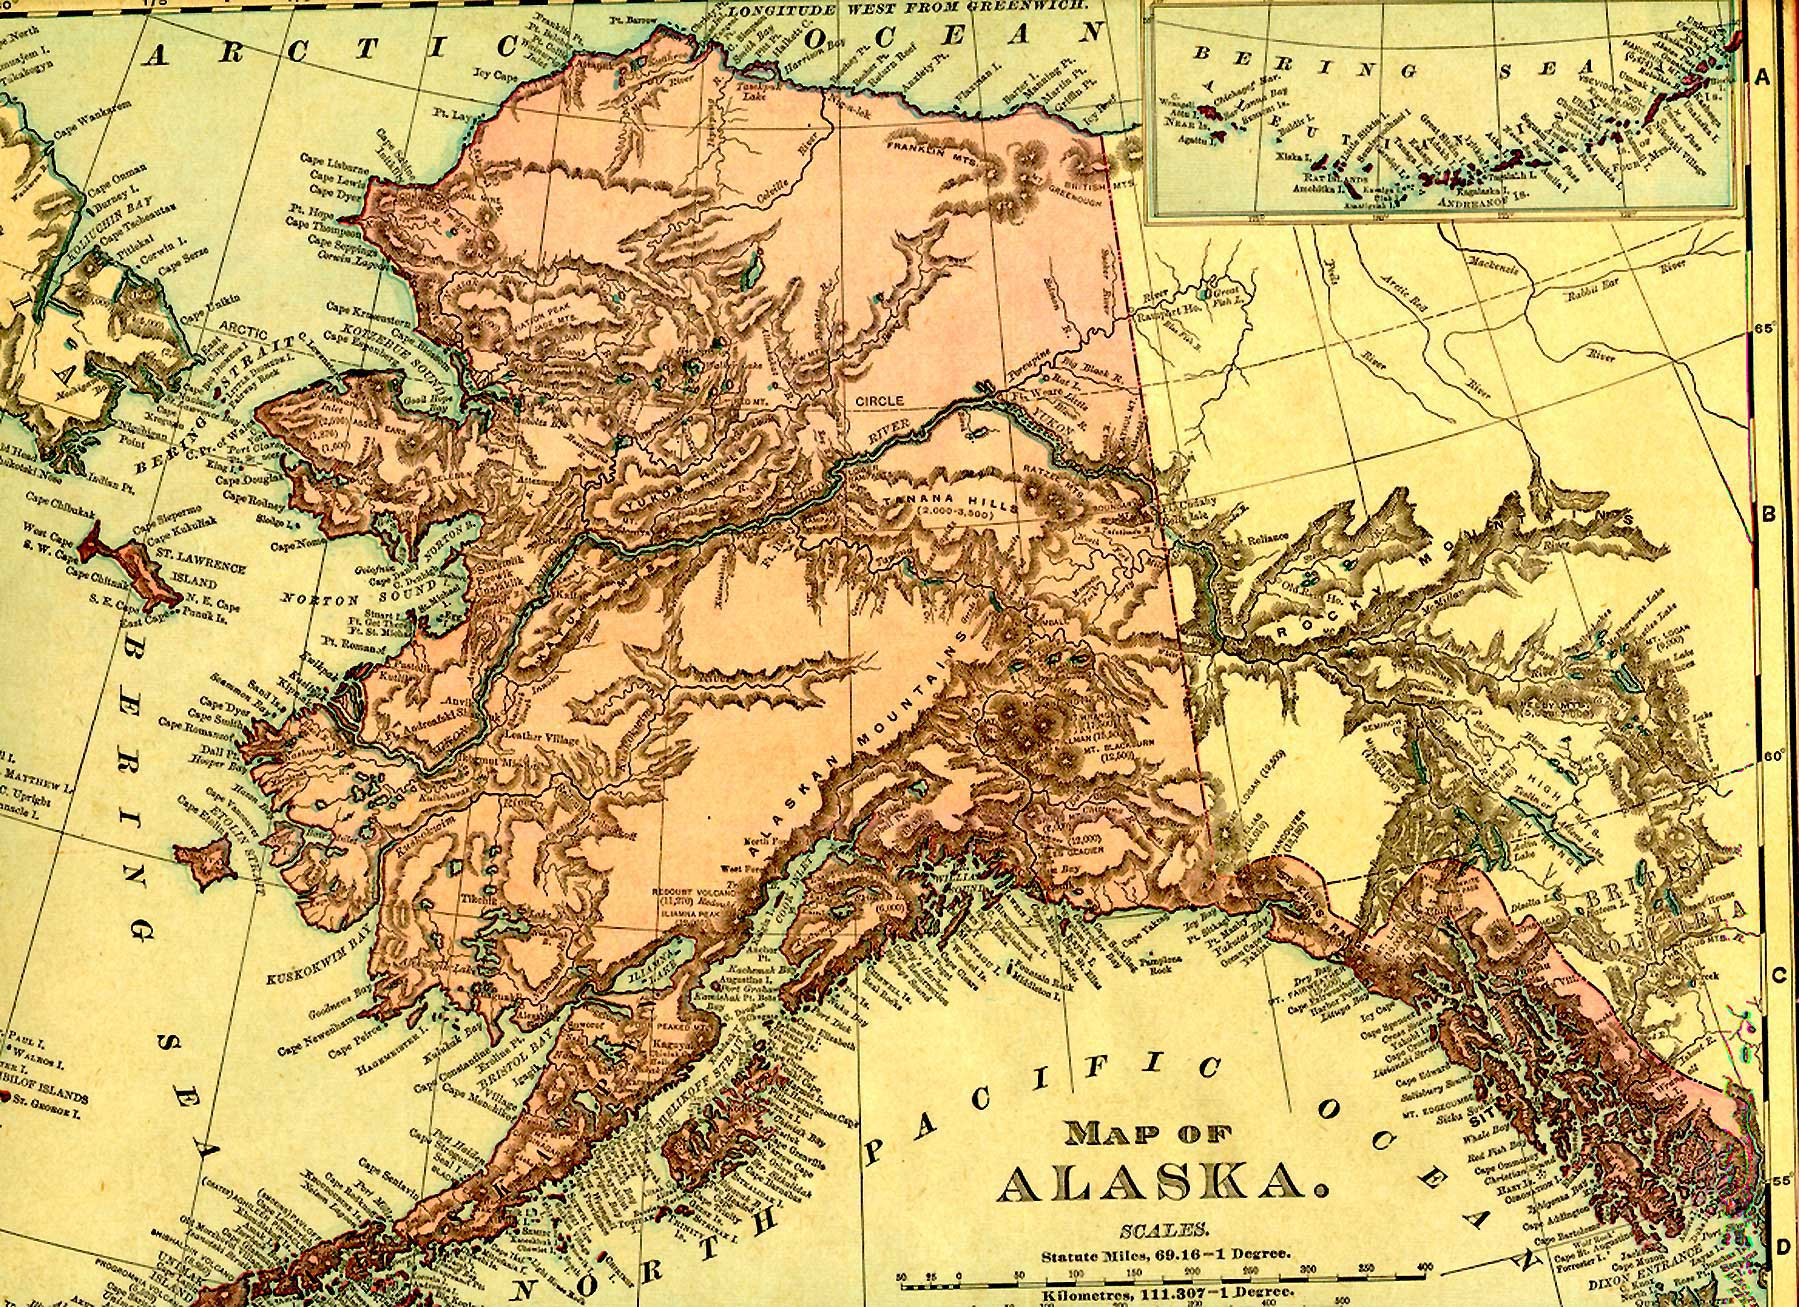 Infant Deaths in Alaska